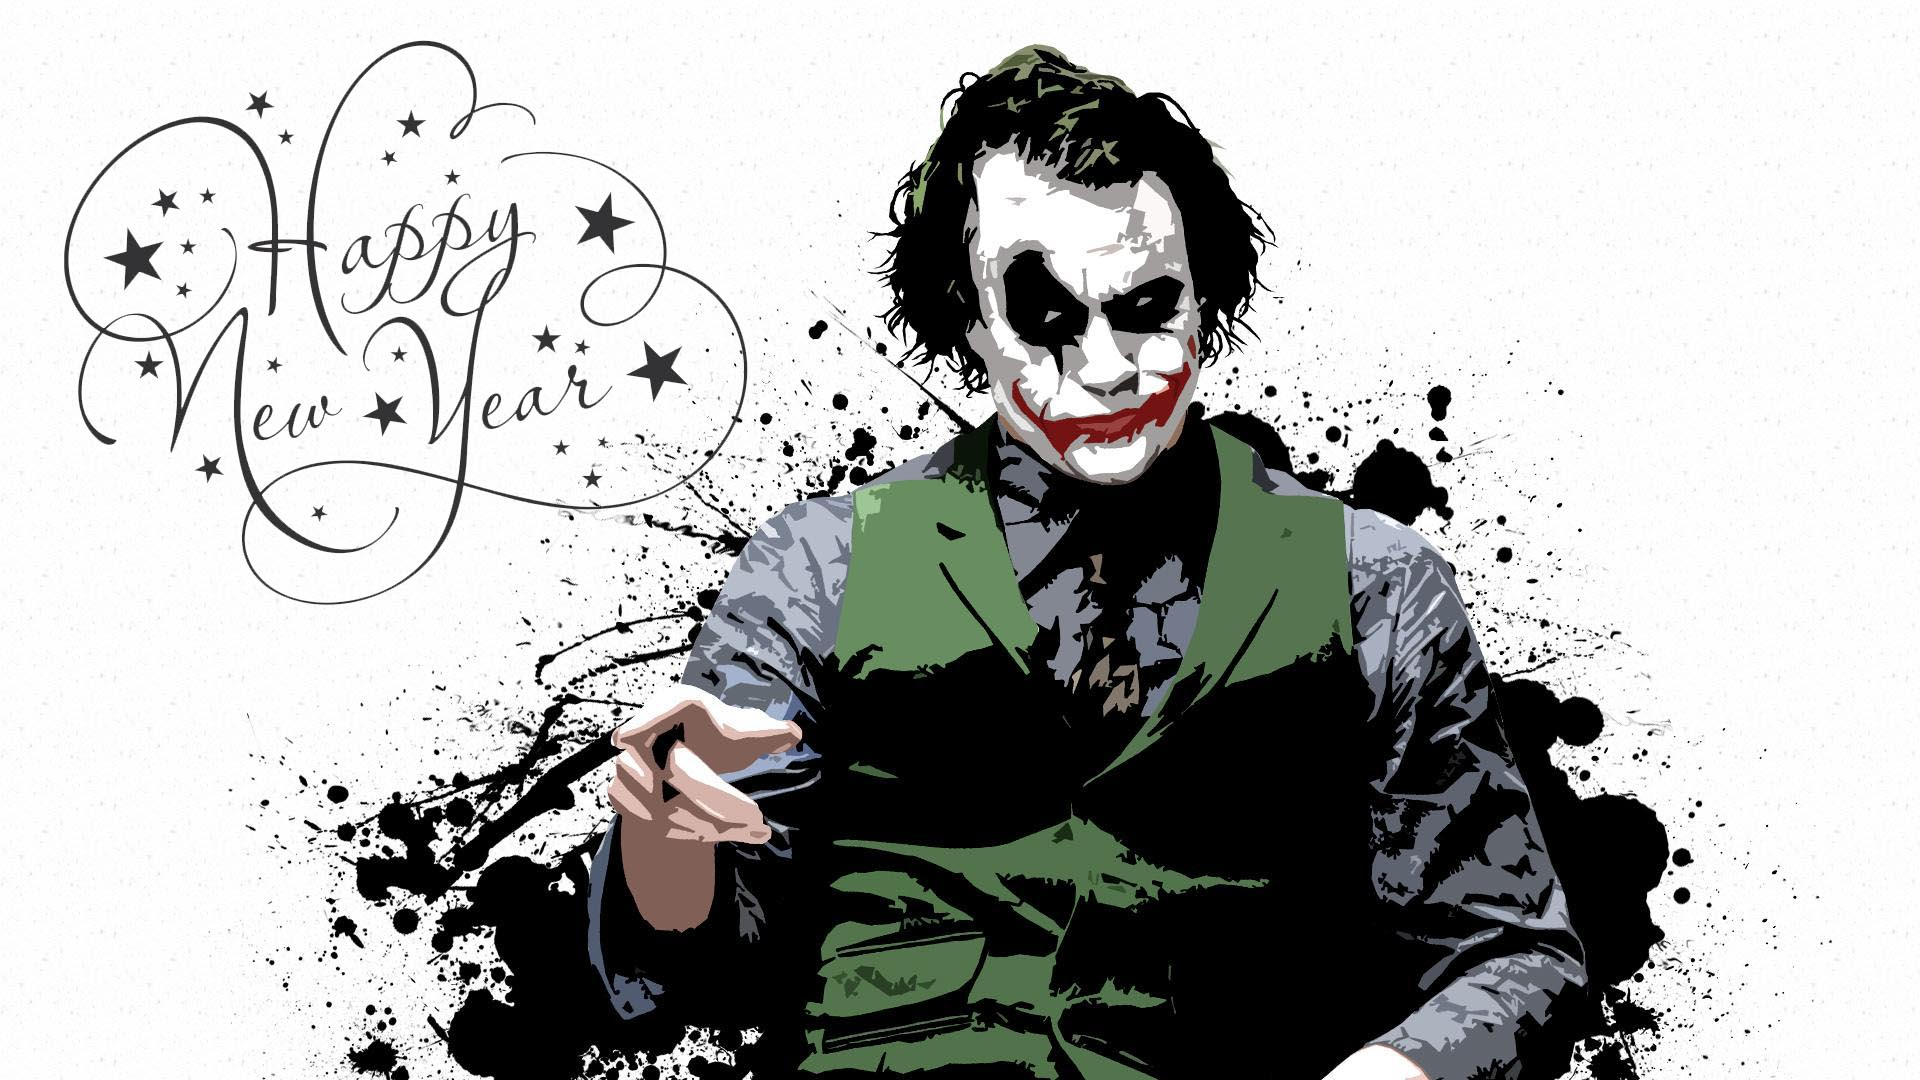 happy new year wishes greetings joker hd desktop wallpaper